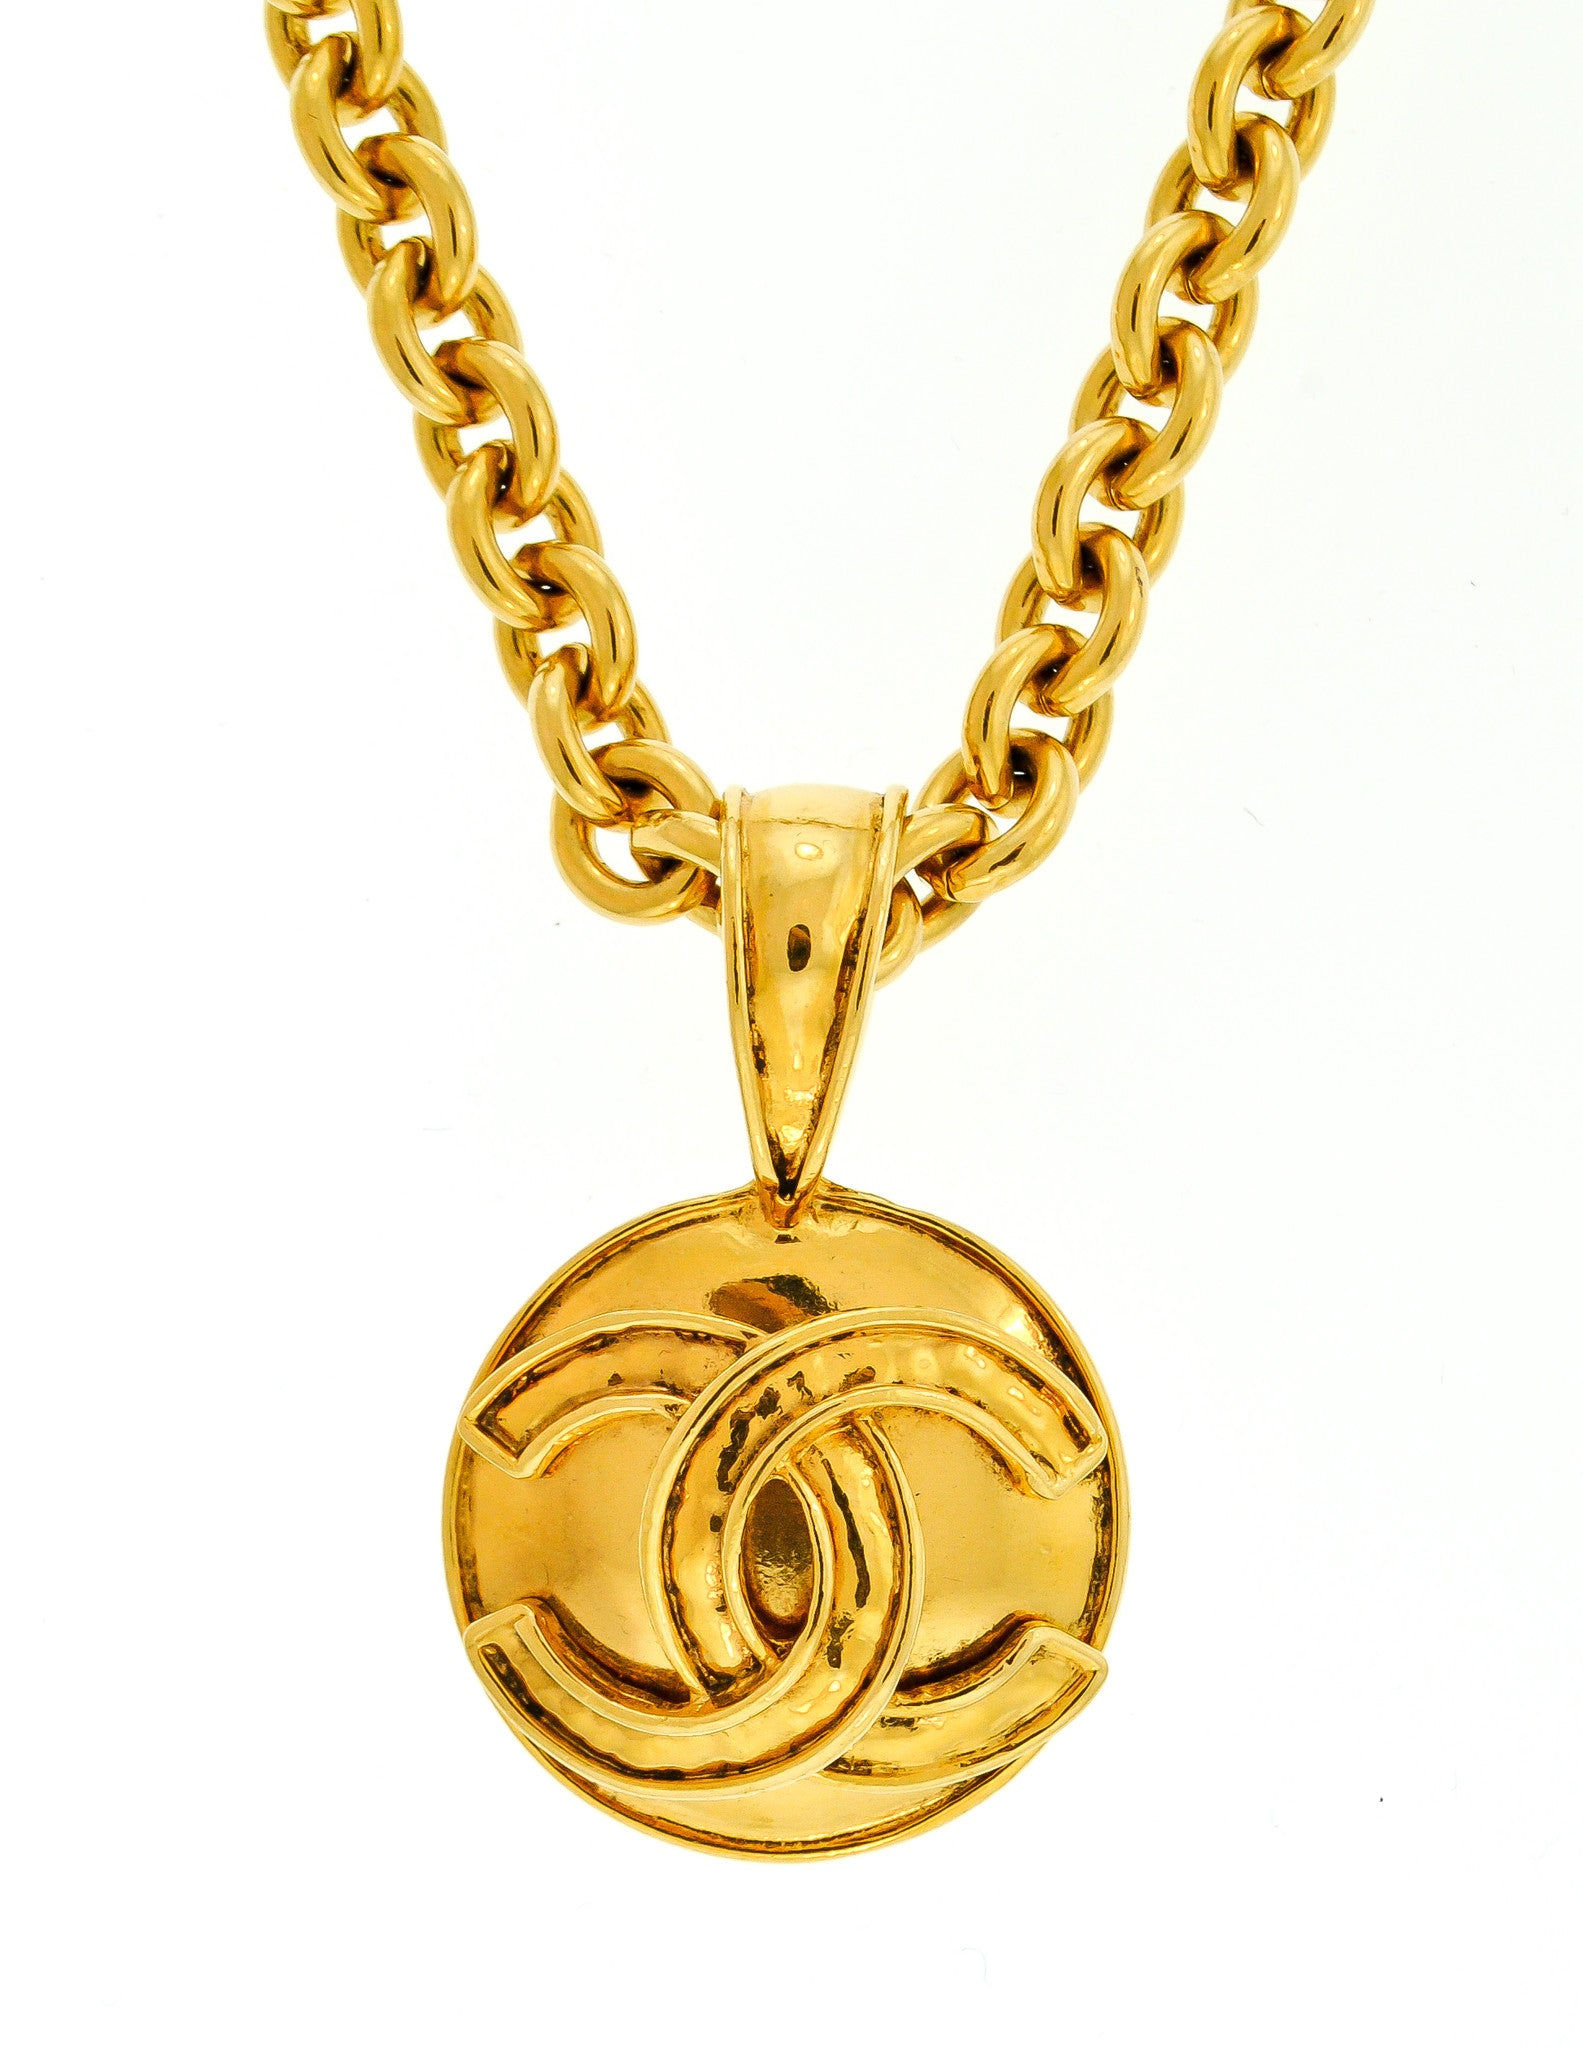 f088c66936847a Chanel Vintage Gold CC Logo Pendant Necklace - Amarcord Vintage Fashion - 2